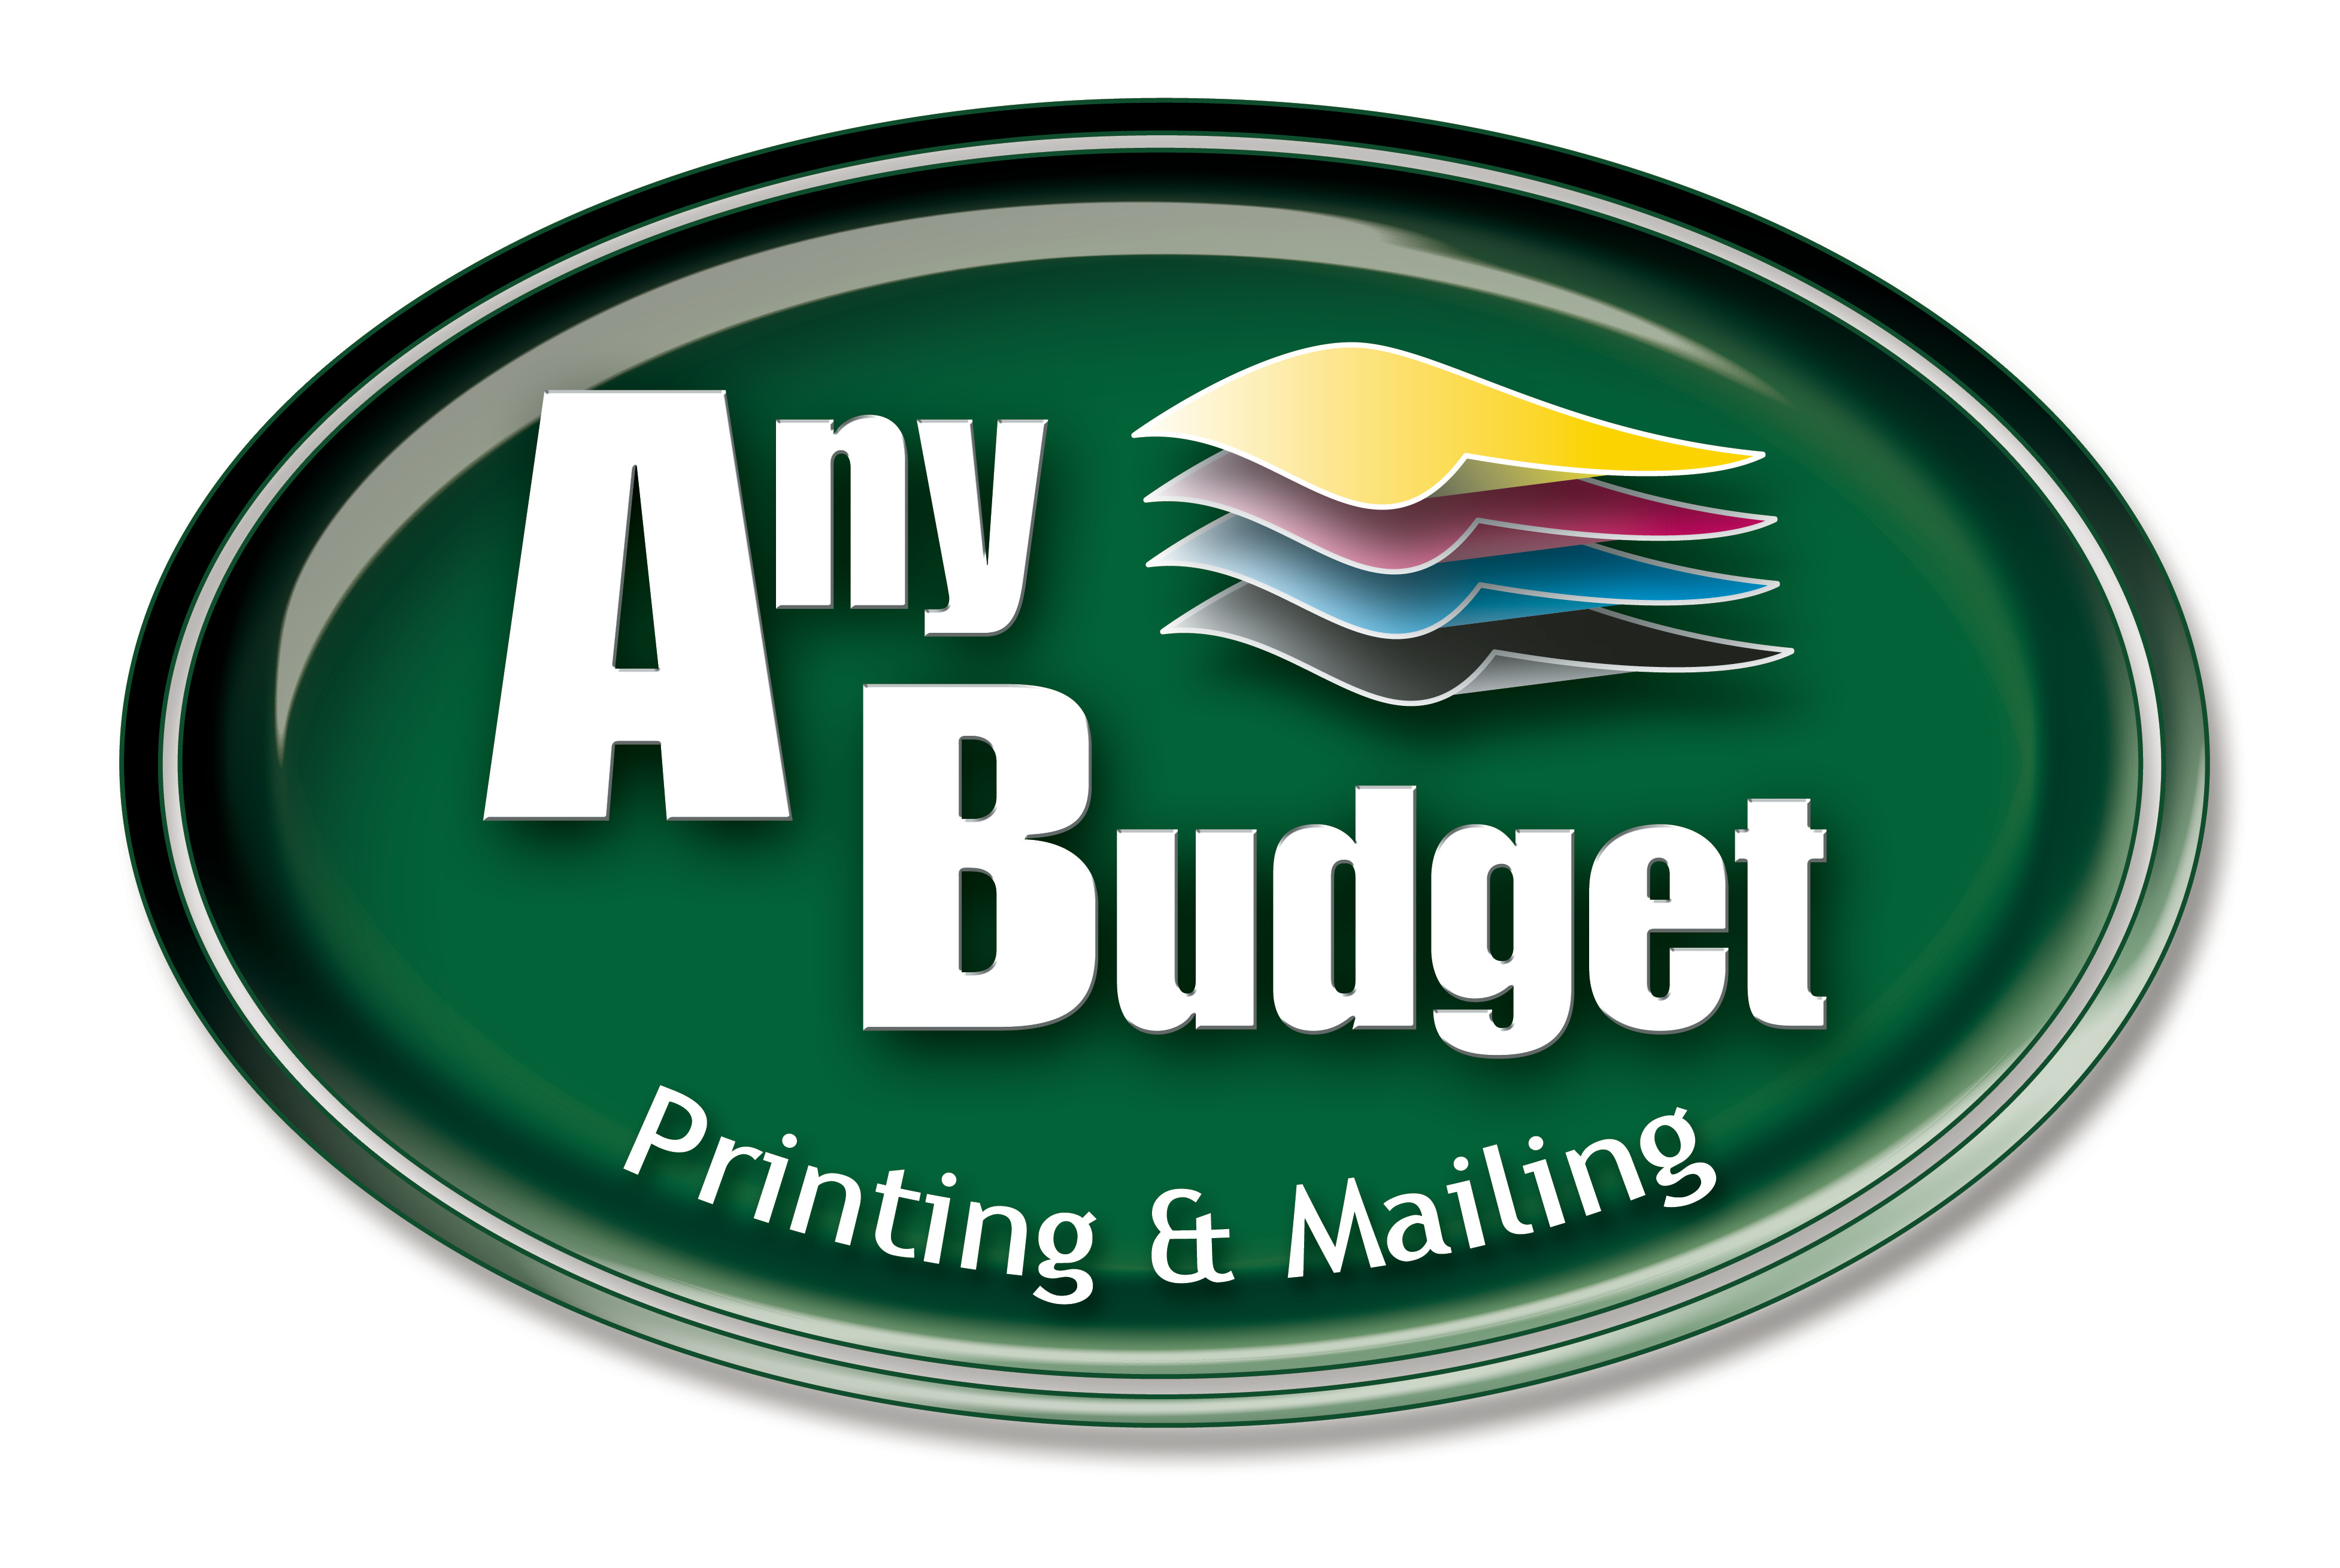 Any Budget Printing & Mailing image 14